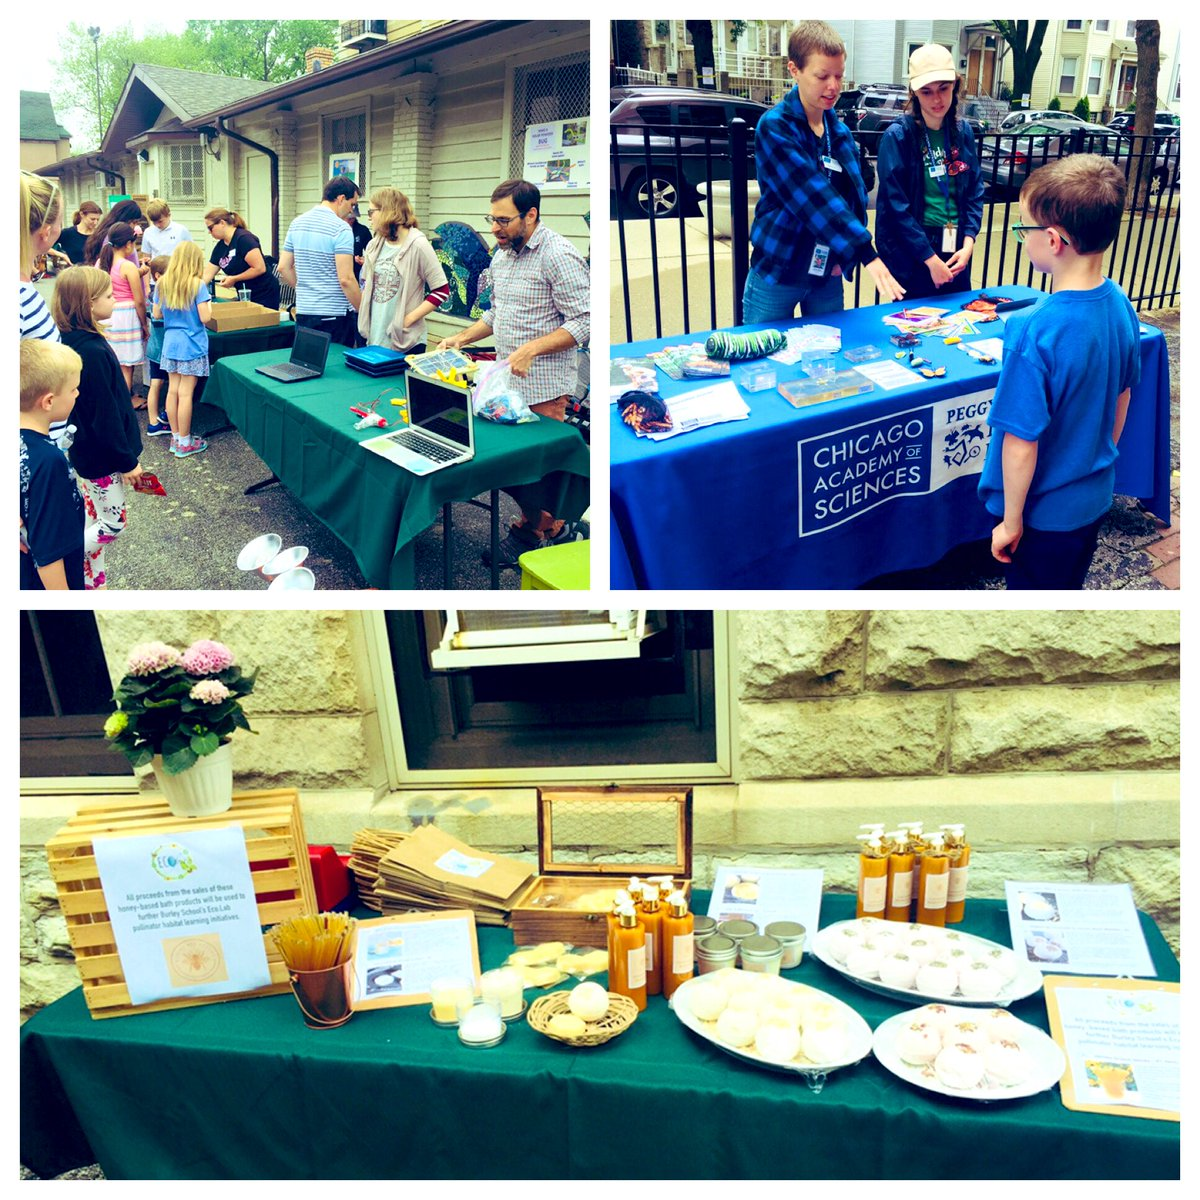 ec12b33ea14 Get bike check up w/@HeritageBicycle , make a dolor robot, paint eco rocks,  learn about bees and more! Come by before 5pm.